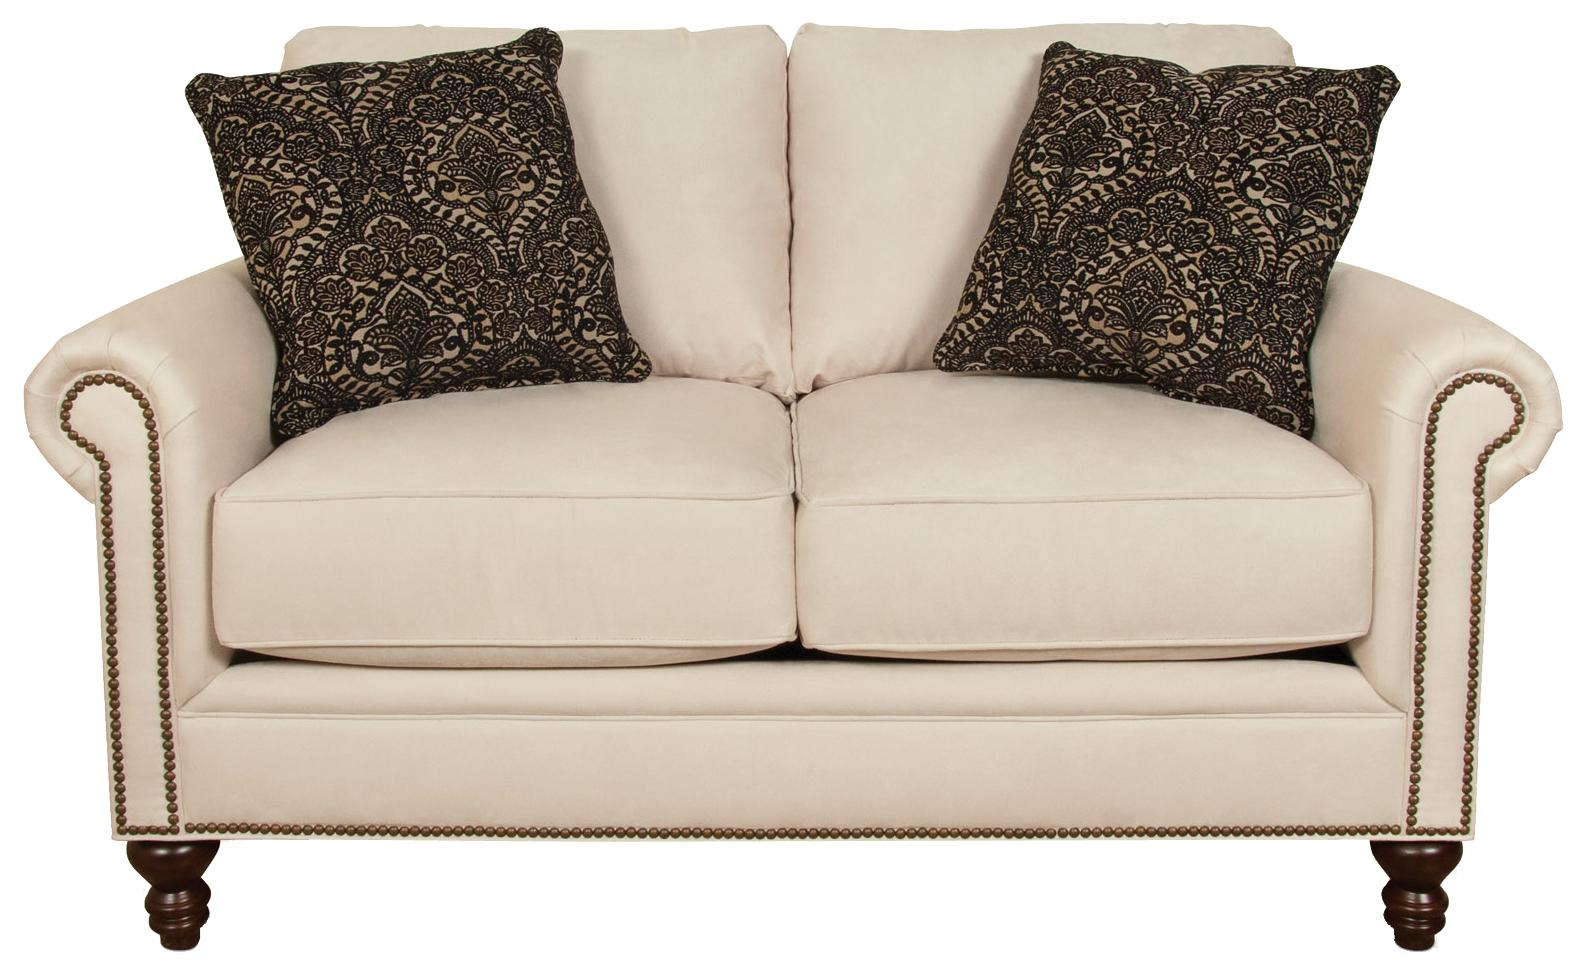 England Telisa  Living Room Loveseat - Item Number: 5836